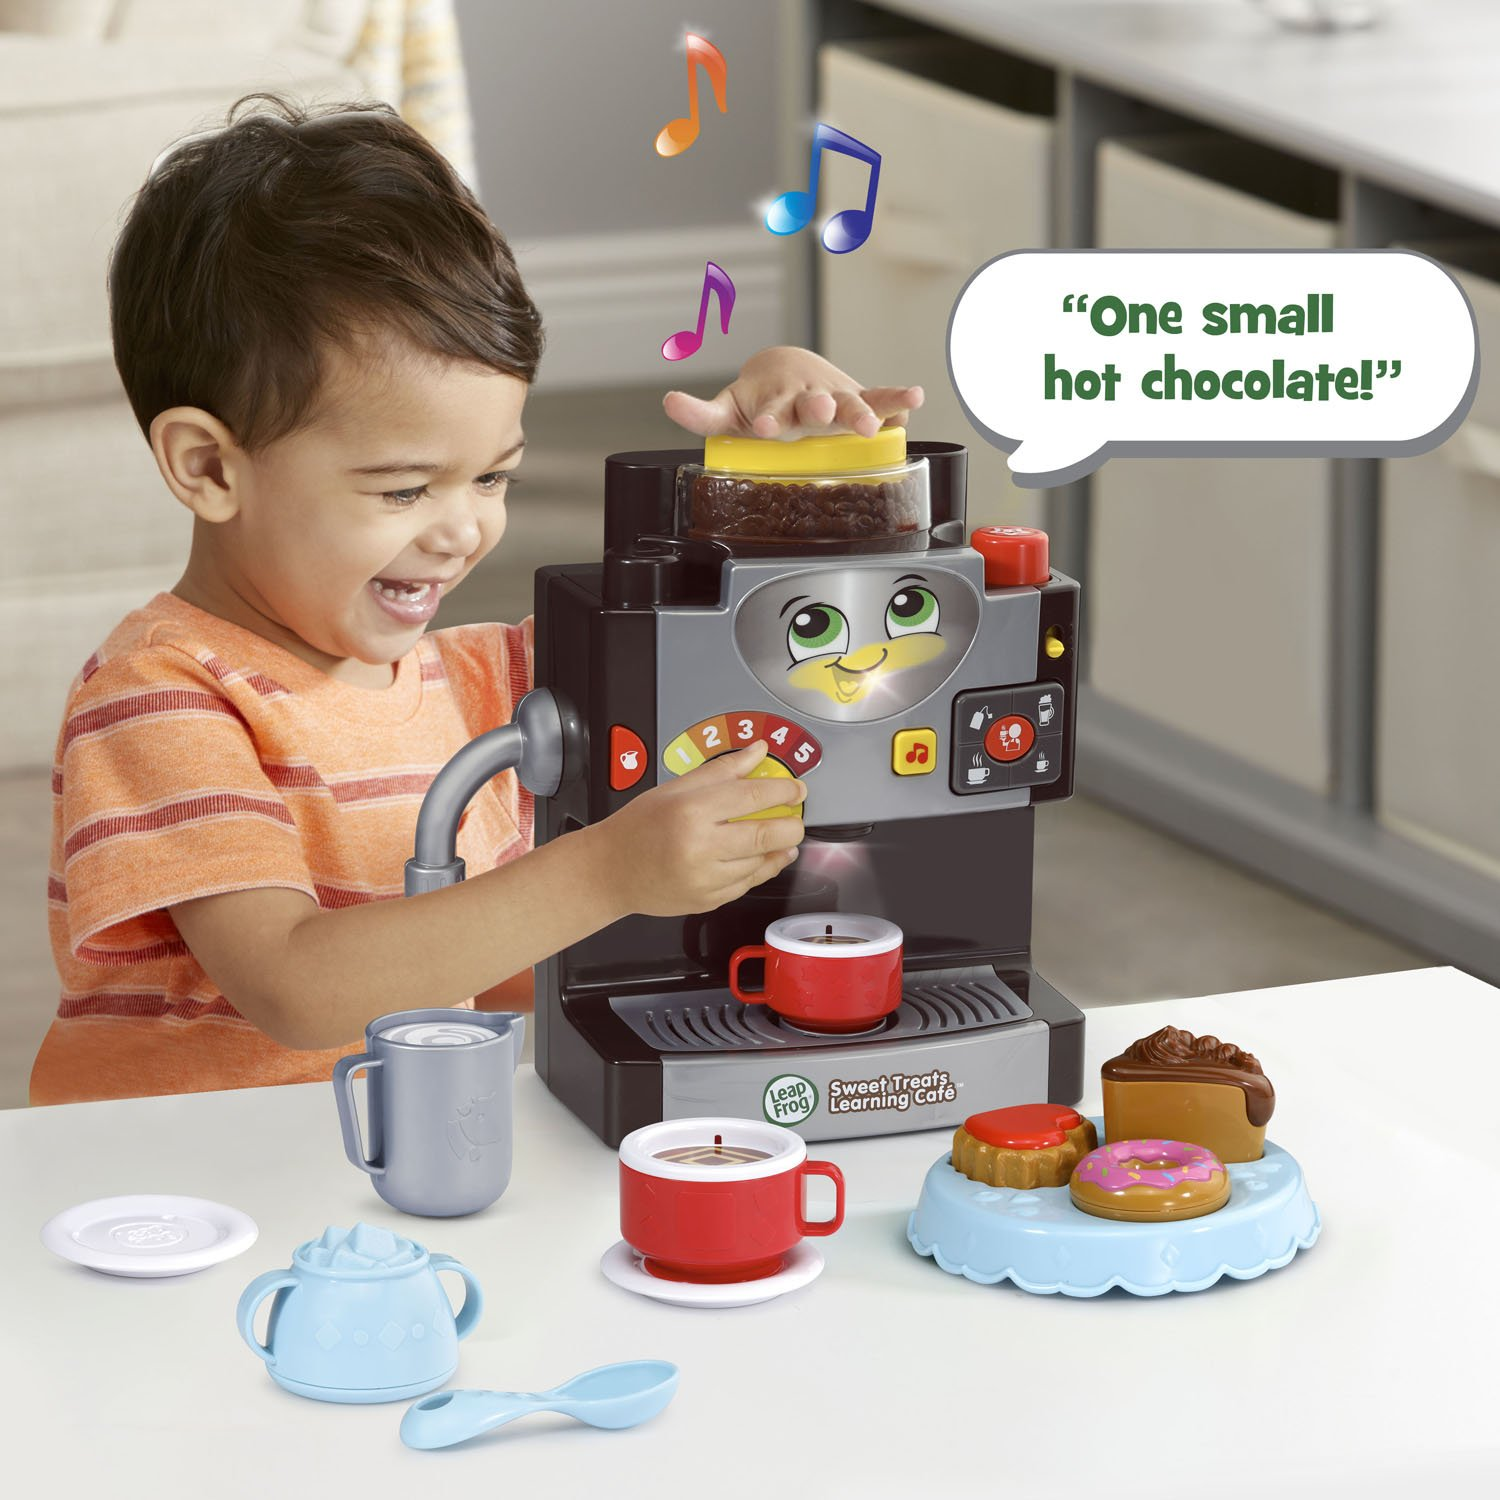 LeapFrog Sweet Treats Learning Café Amazon Exclusive, Black by LeapFrog (Image #6)